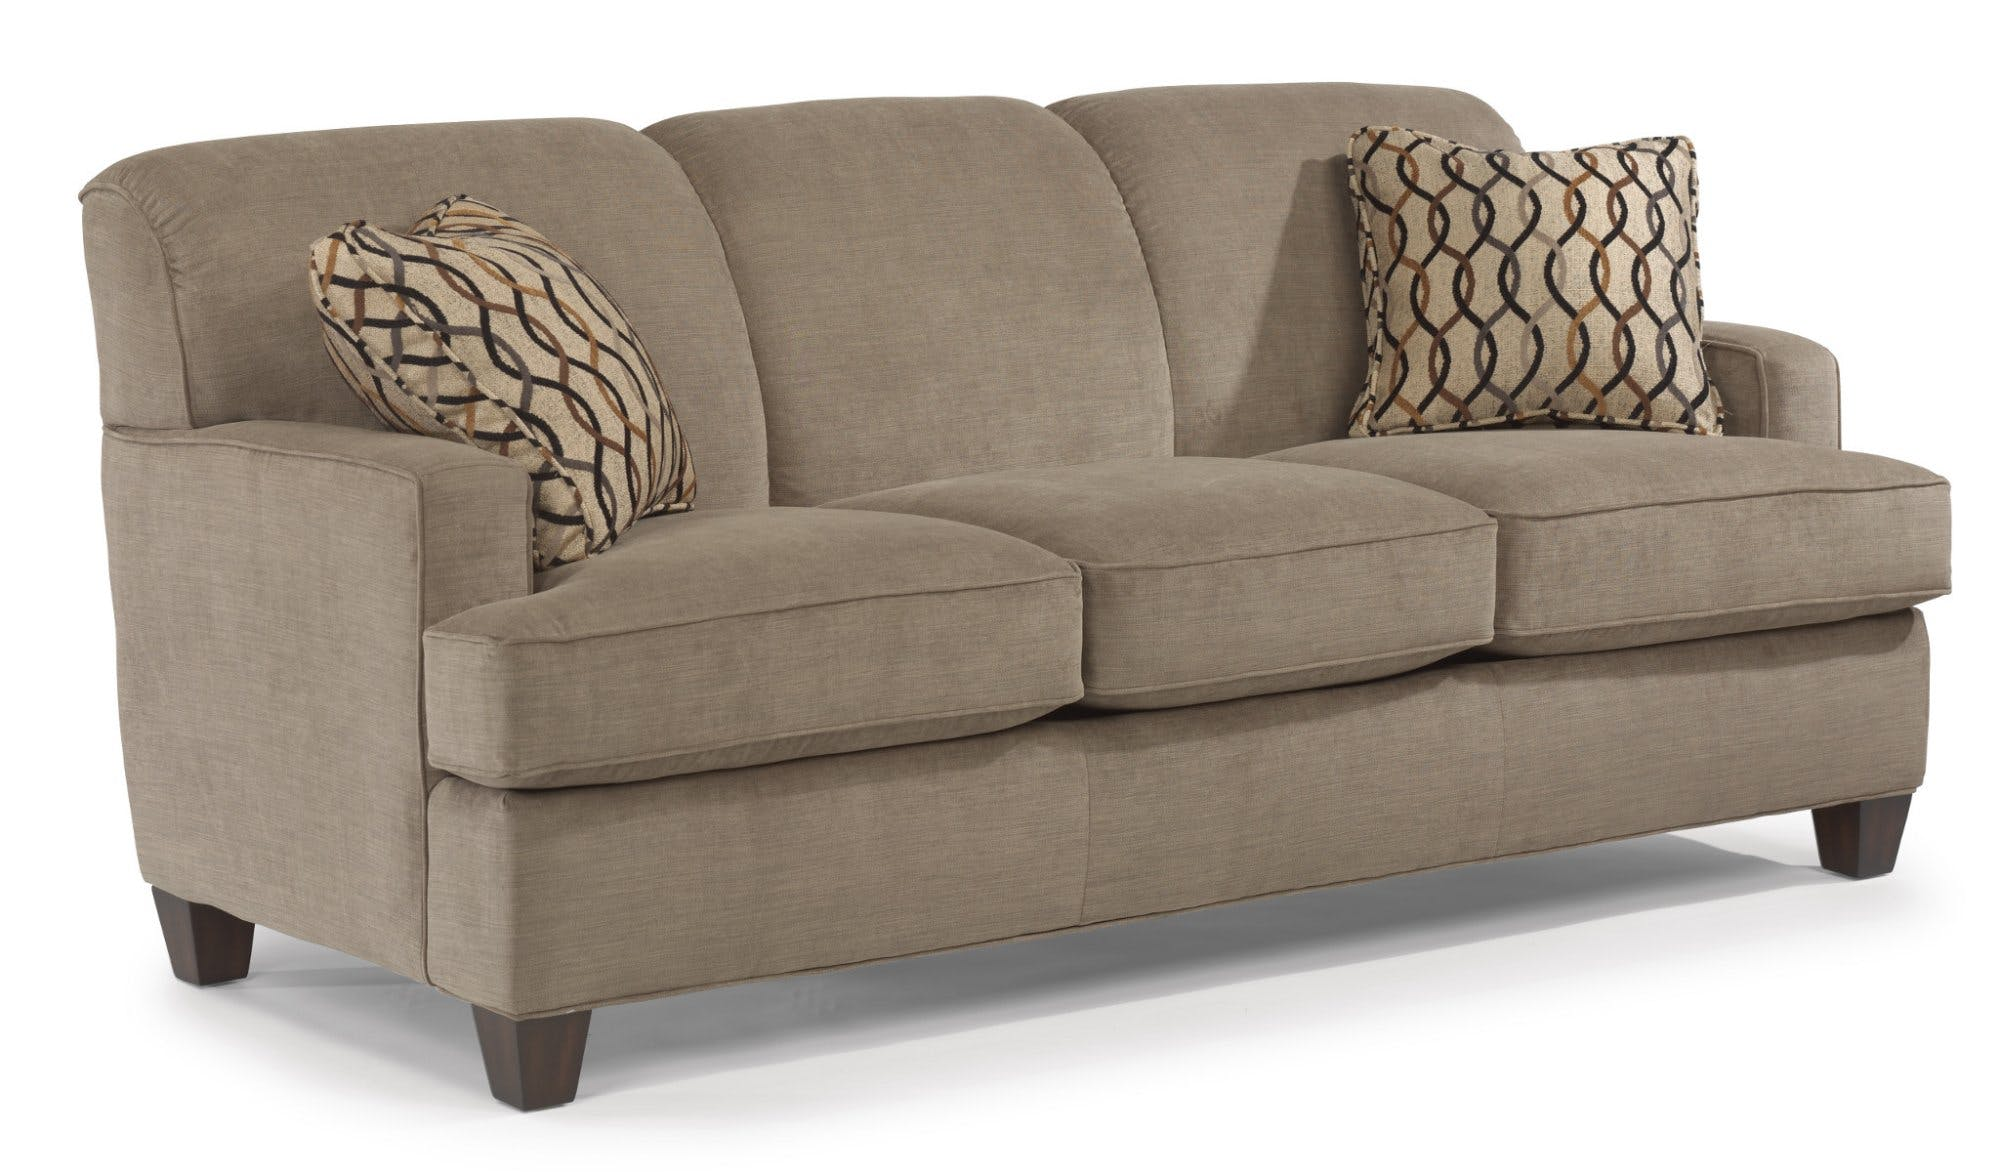 flexsteel sofas flexsteel fabric sofa 5641-31 EYQHFVN